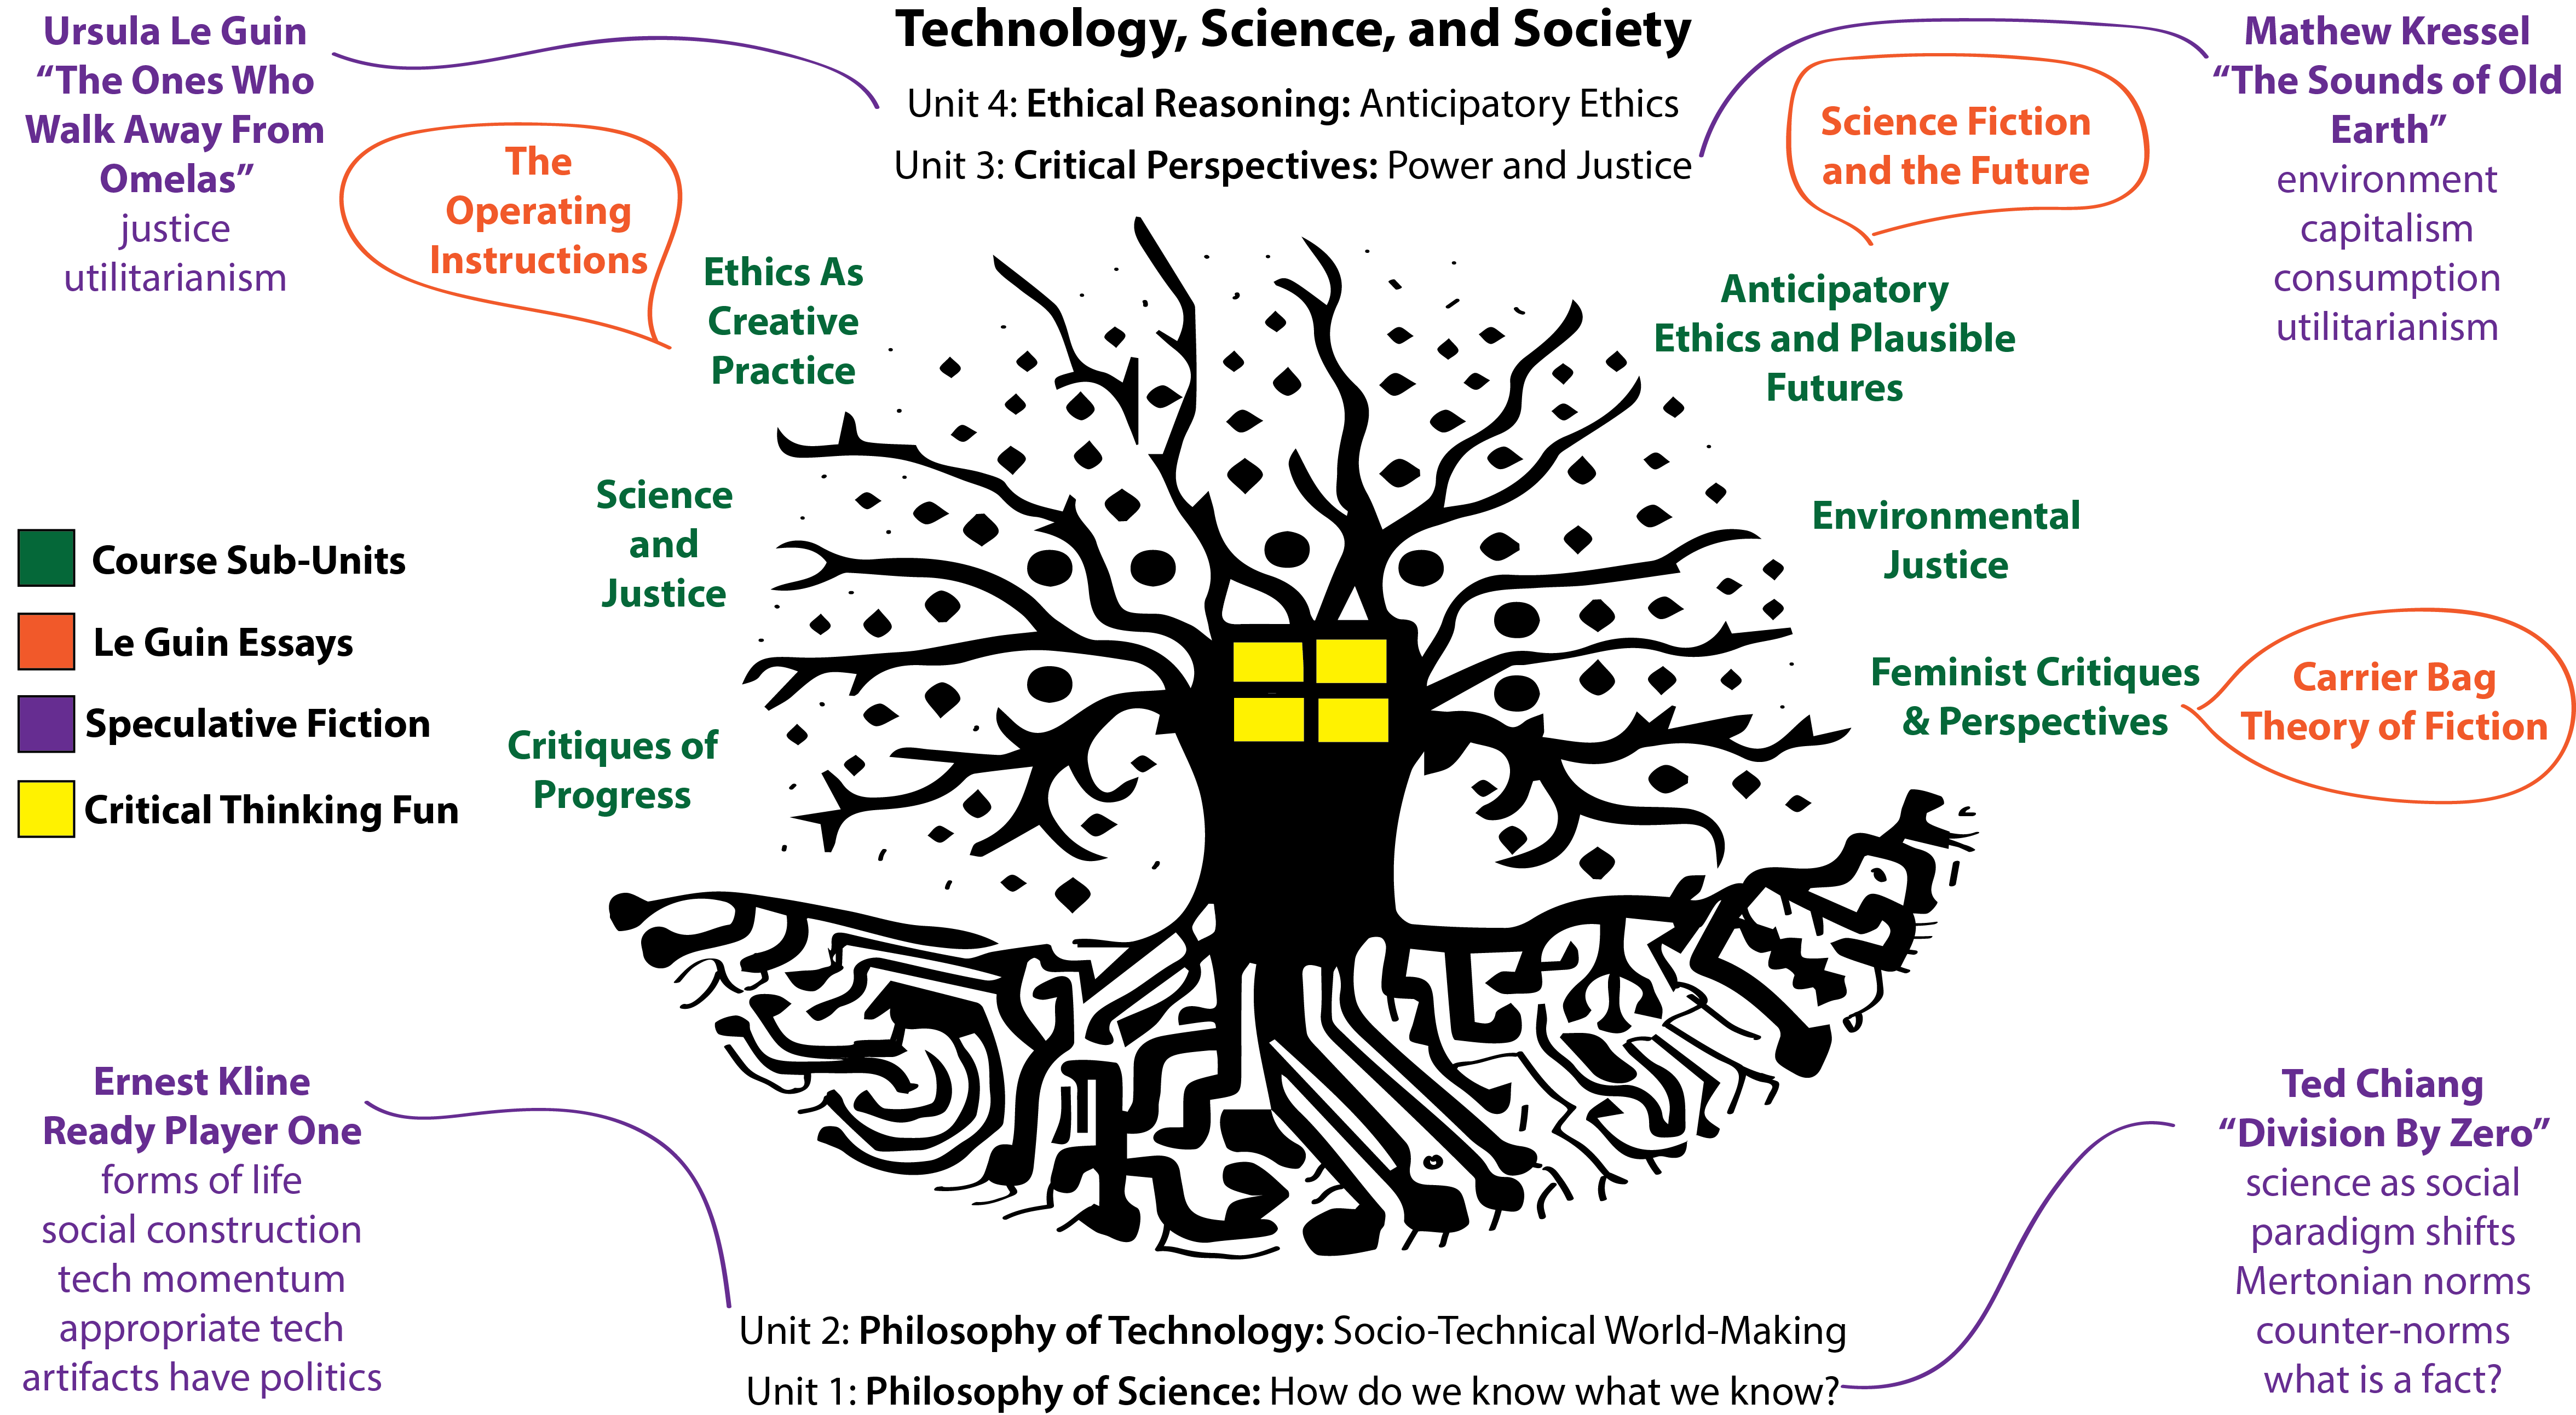 visual diagram imagining a STS course with speculative fiction